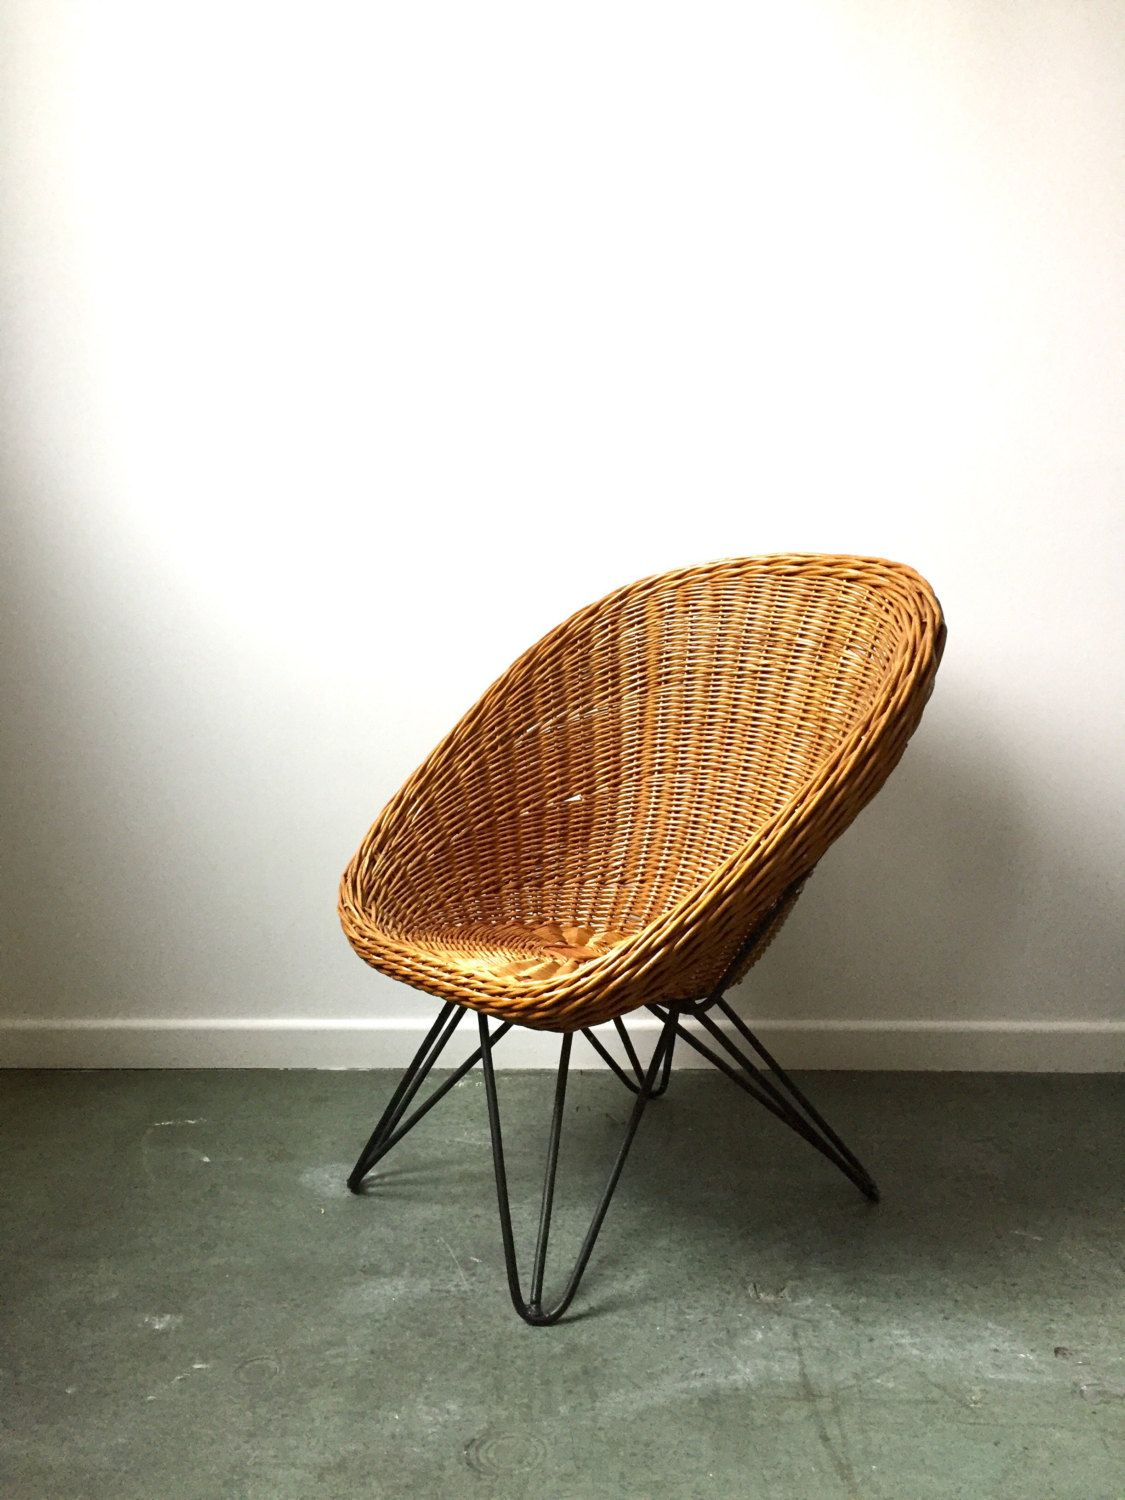 vintage rattan chair wicker chair kids vintage loungstuhl wicker chairs retro midmodern. Black Bedroom Furniture Sets. Home Design Ideas